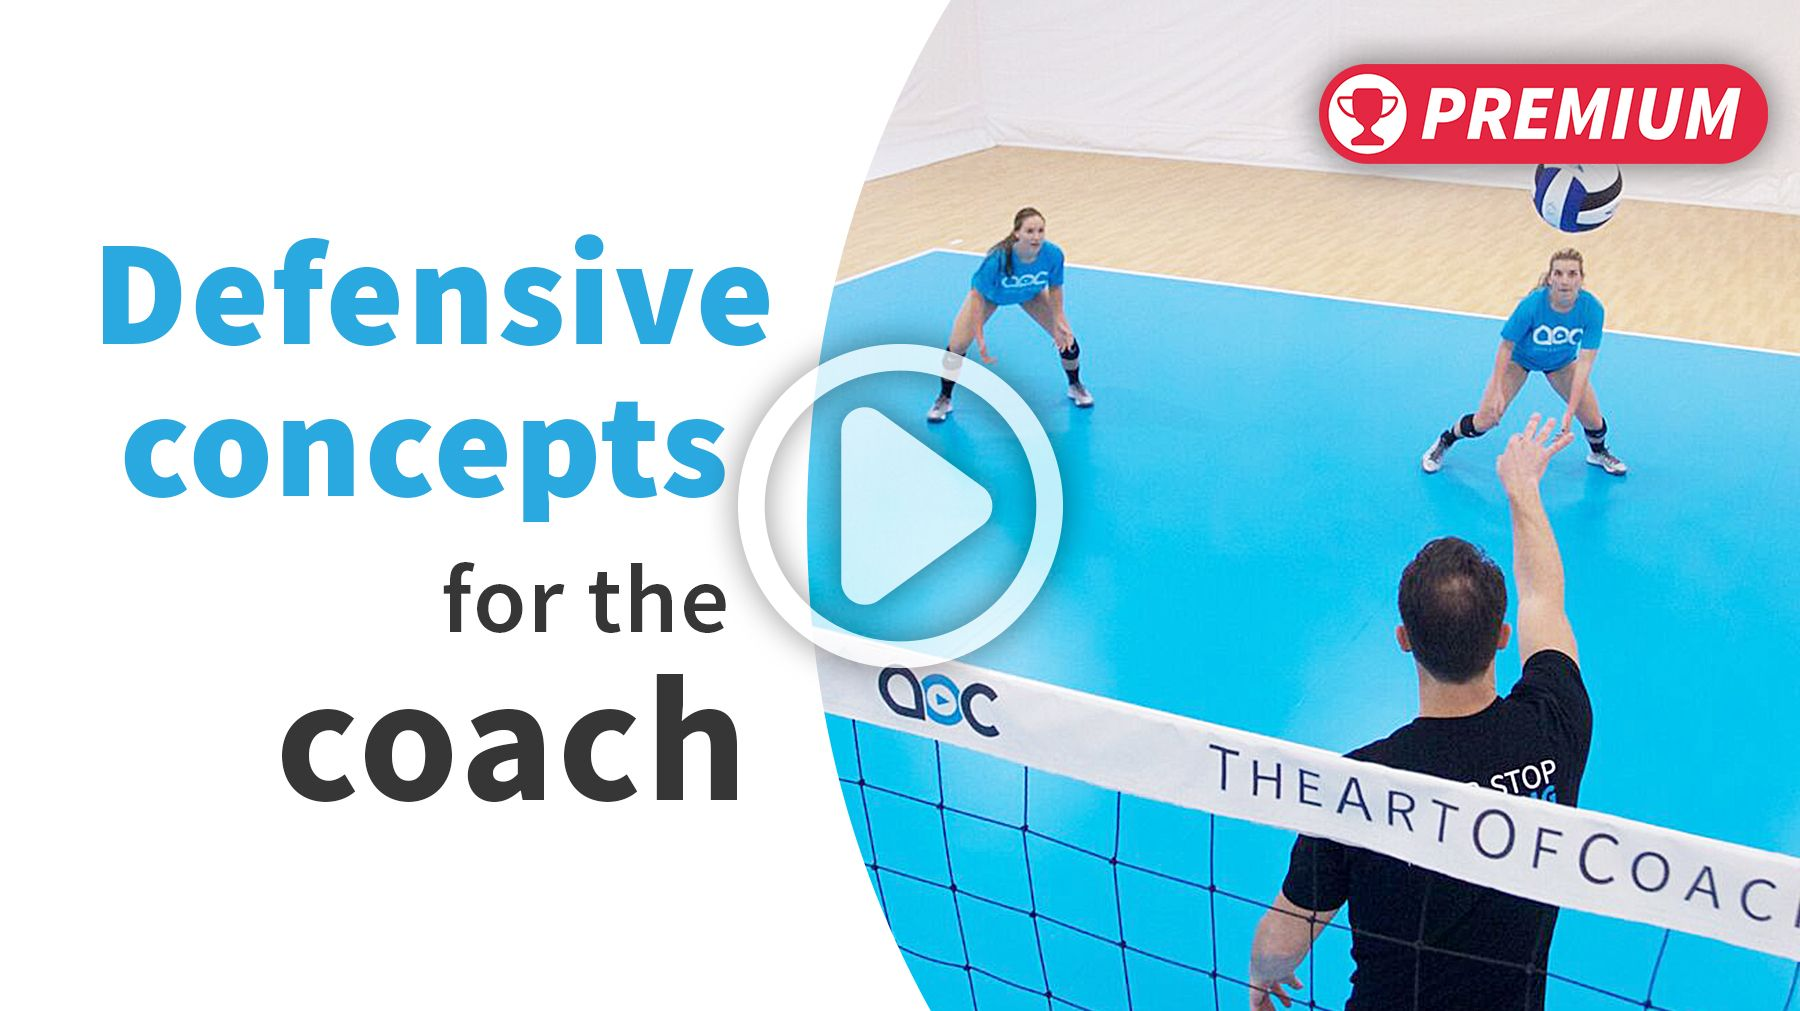 Defensive Concepts For The Coach With Images Coaching Volleyball Coach Coaching